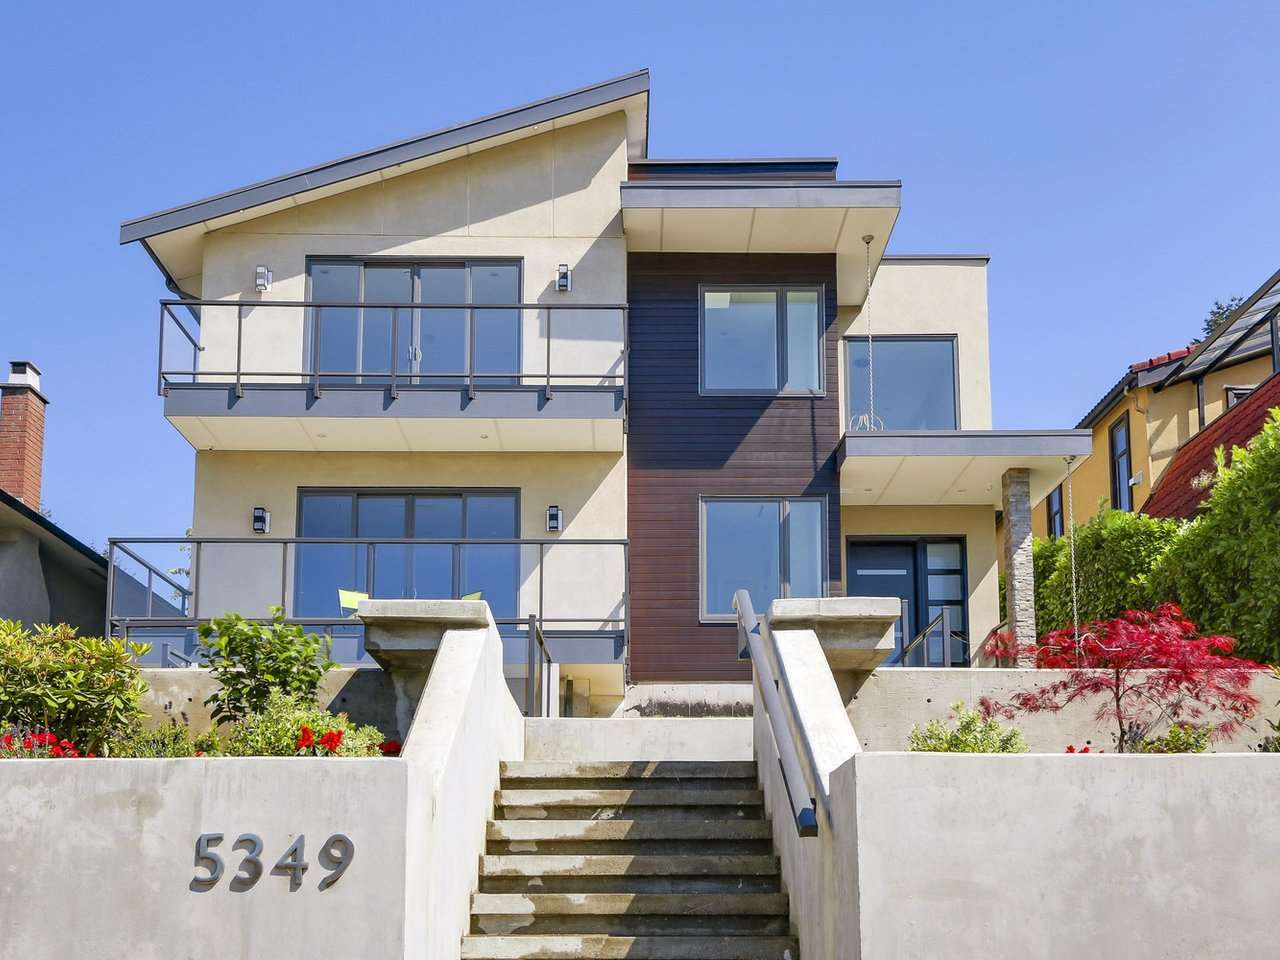 Contemporary & luxurious new home offers 6 bedrooms + 5-1/2 bathrooms. Open-concept design, S/S KitchenAid appliances, gleaming Quartz counter tops, Merit-kitchens cabinets, Kohler and Grohe plumbing fixtures. 10ft ceiling on main, 9 ft on both upstairs and basement. Fabulous city and moutain views. Roomy balconys offer extra space on main and upper floor. Basement comes with 1- bedroom legal suite which can be mortgage helper. Mins to schools, restaurants, and Metrotown. A must see!